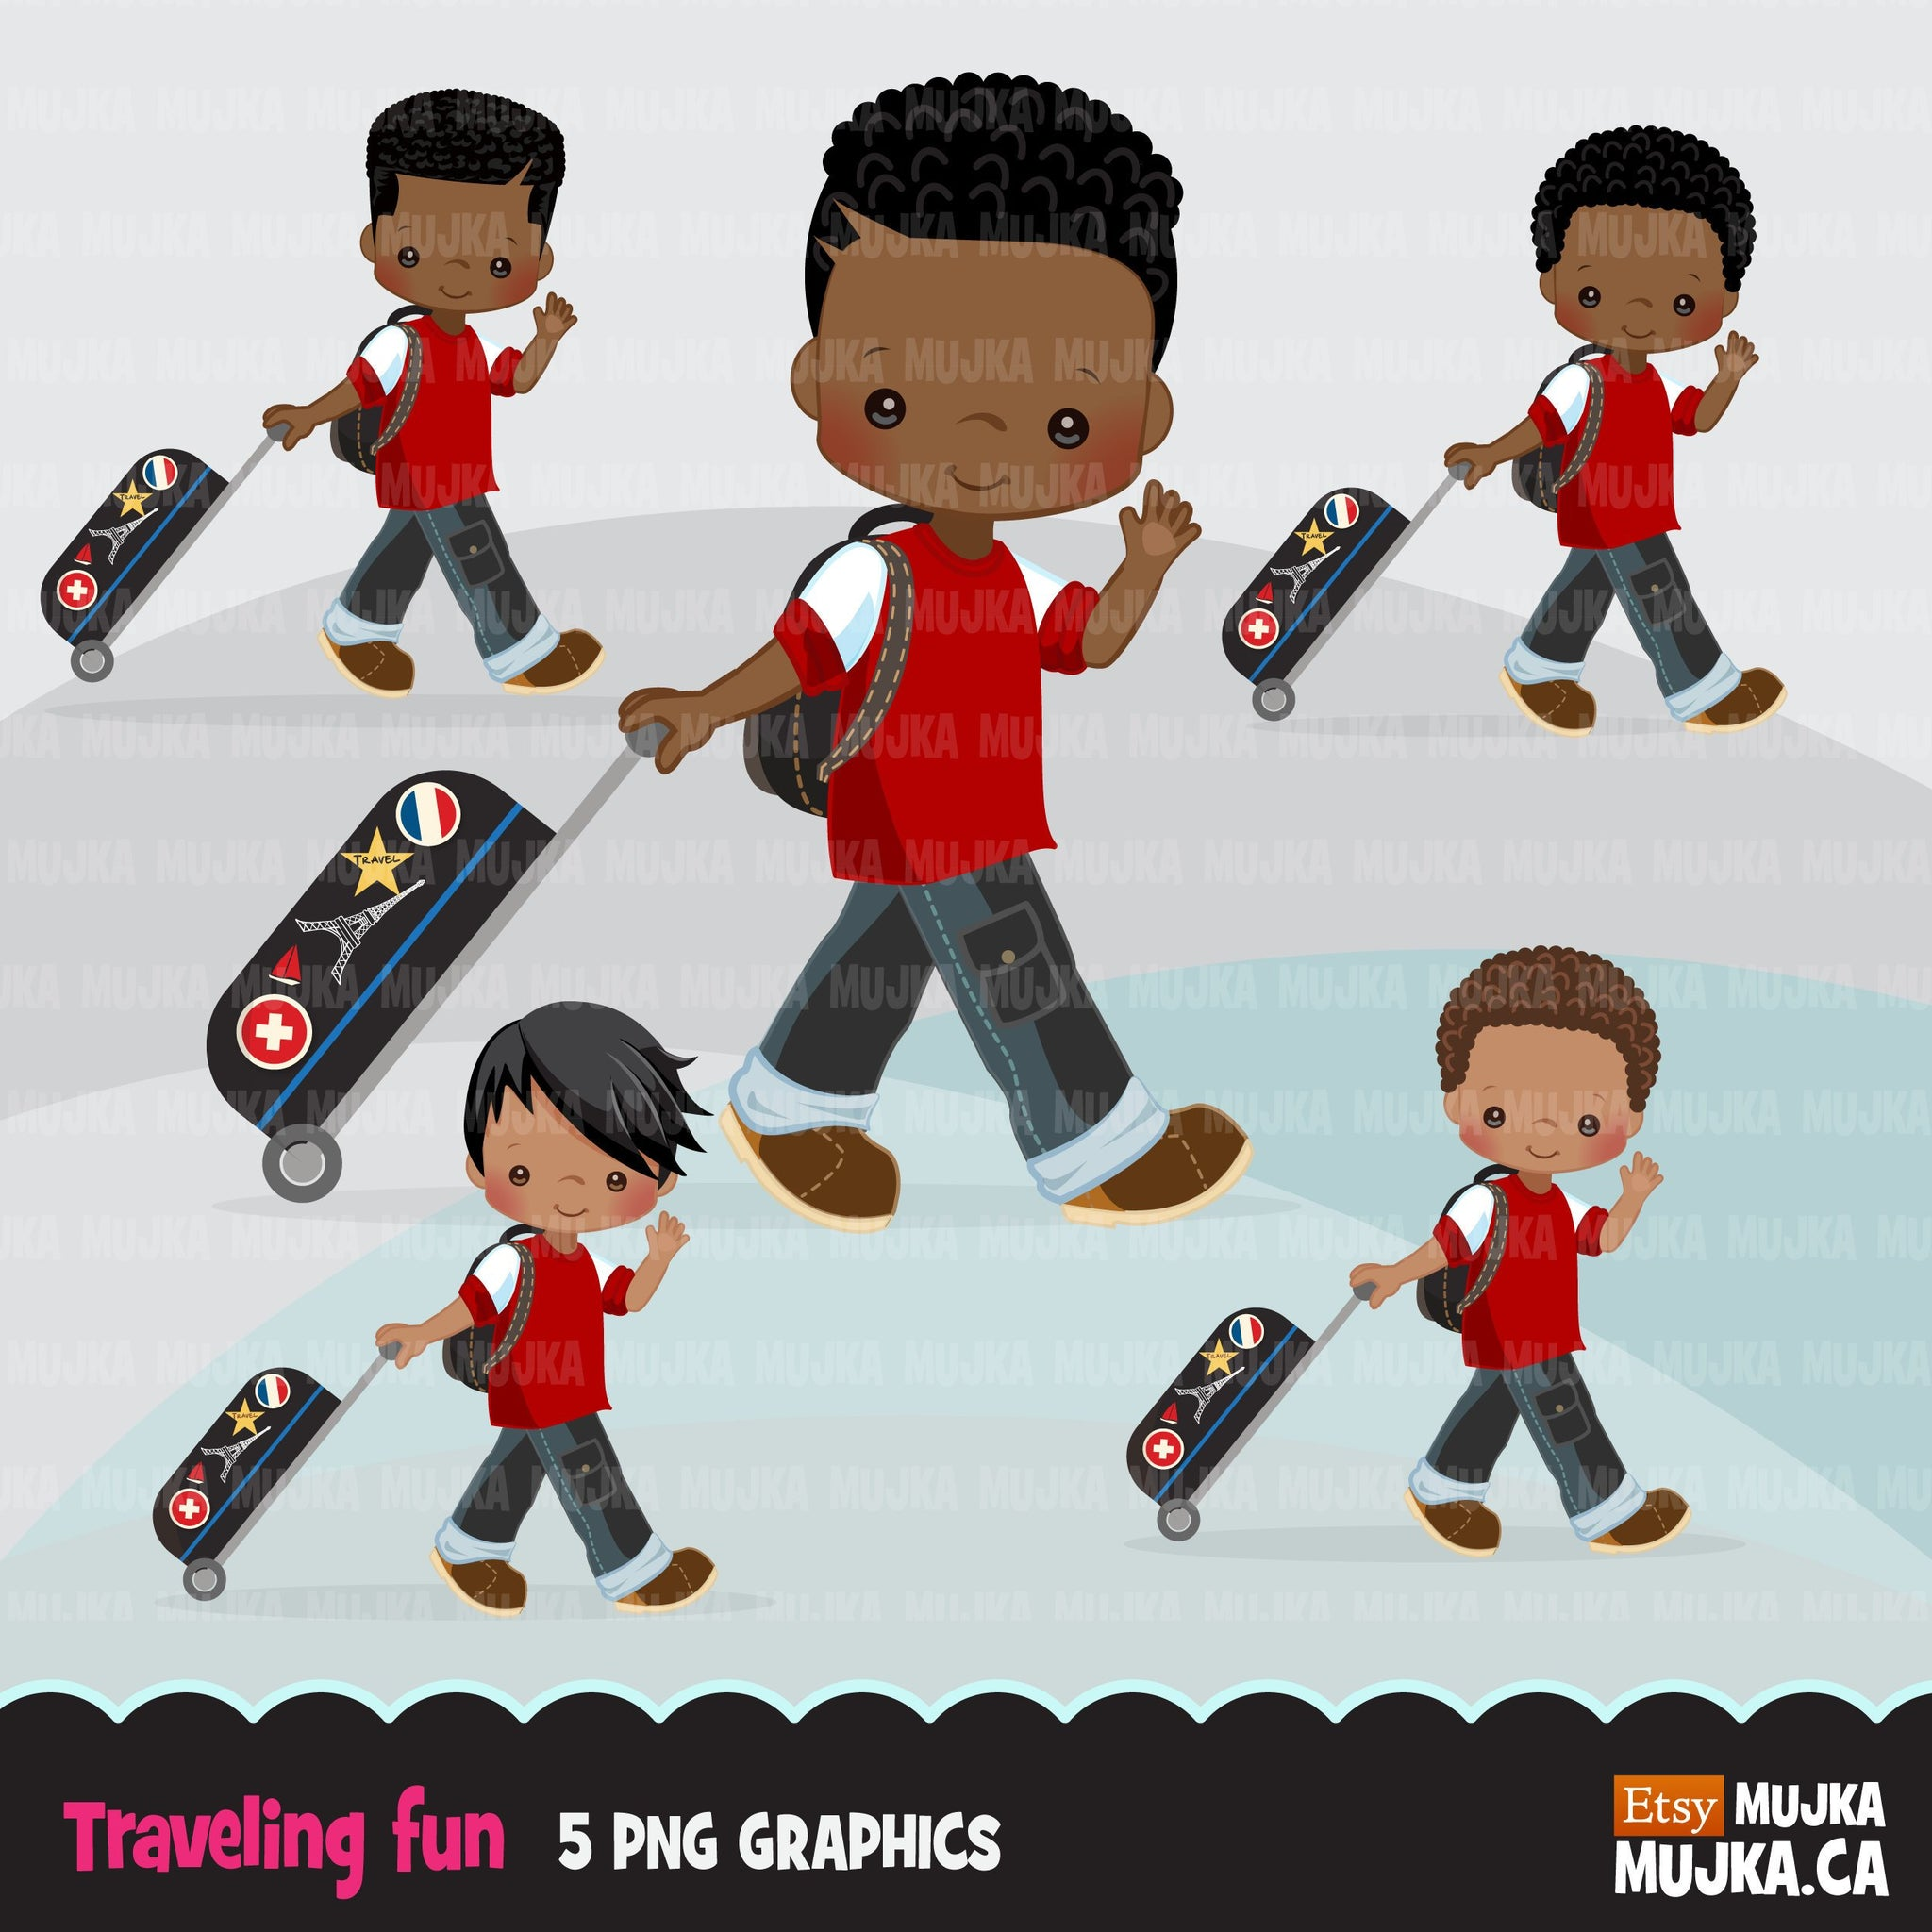 Traveling little black boy clipart, Vacation graphics with suitcase and backpack, passport cover graphics, holiday commercial use PNG